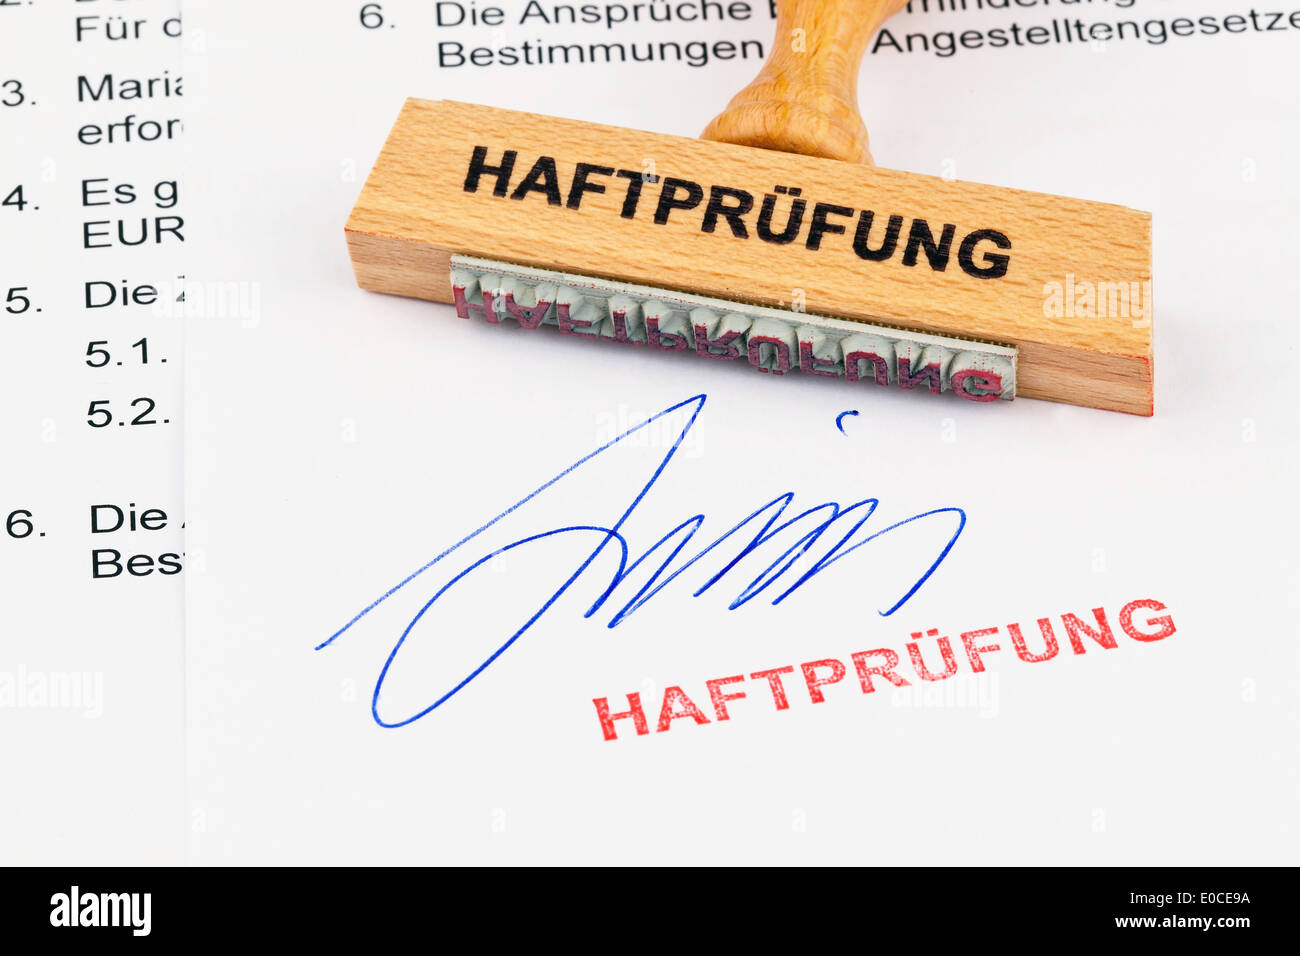 A stamp of wood lies on a document. Label Custody check, Ein Stempel aus Holz liegt auf einem Dokument. Aufschrift Stock Photo